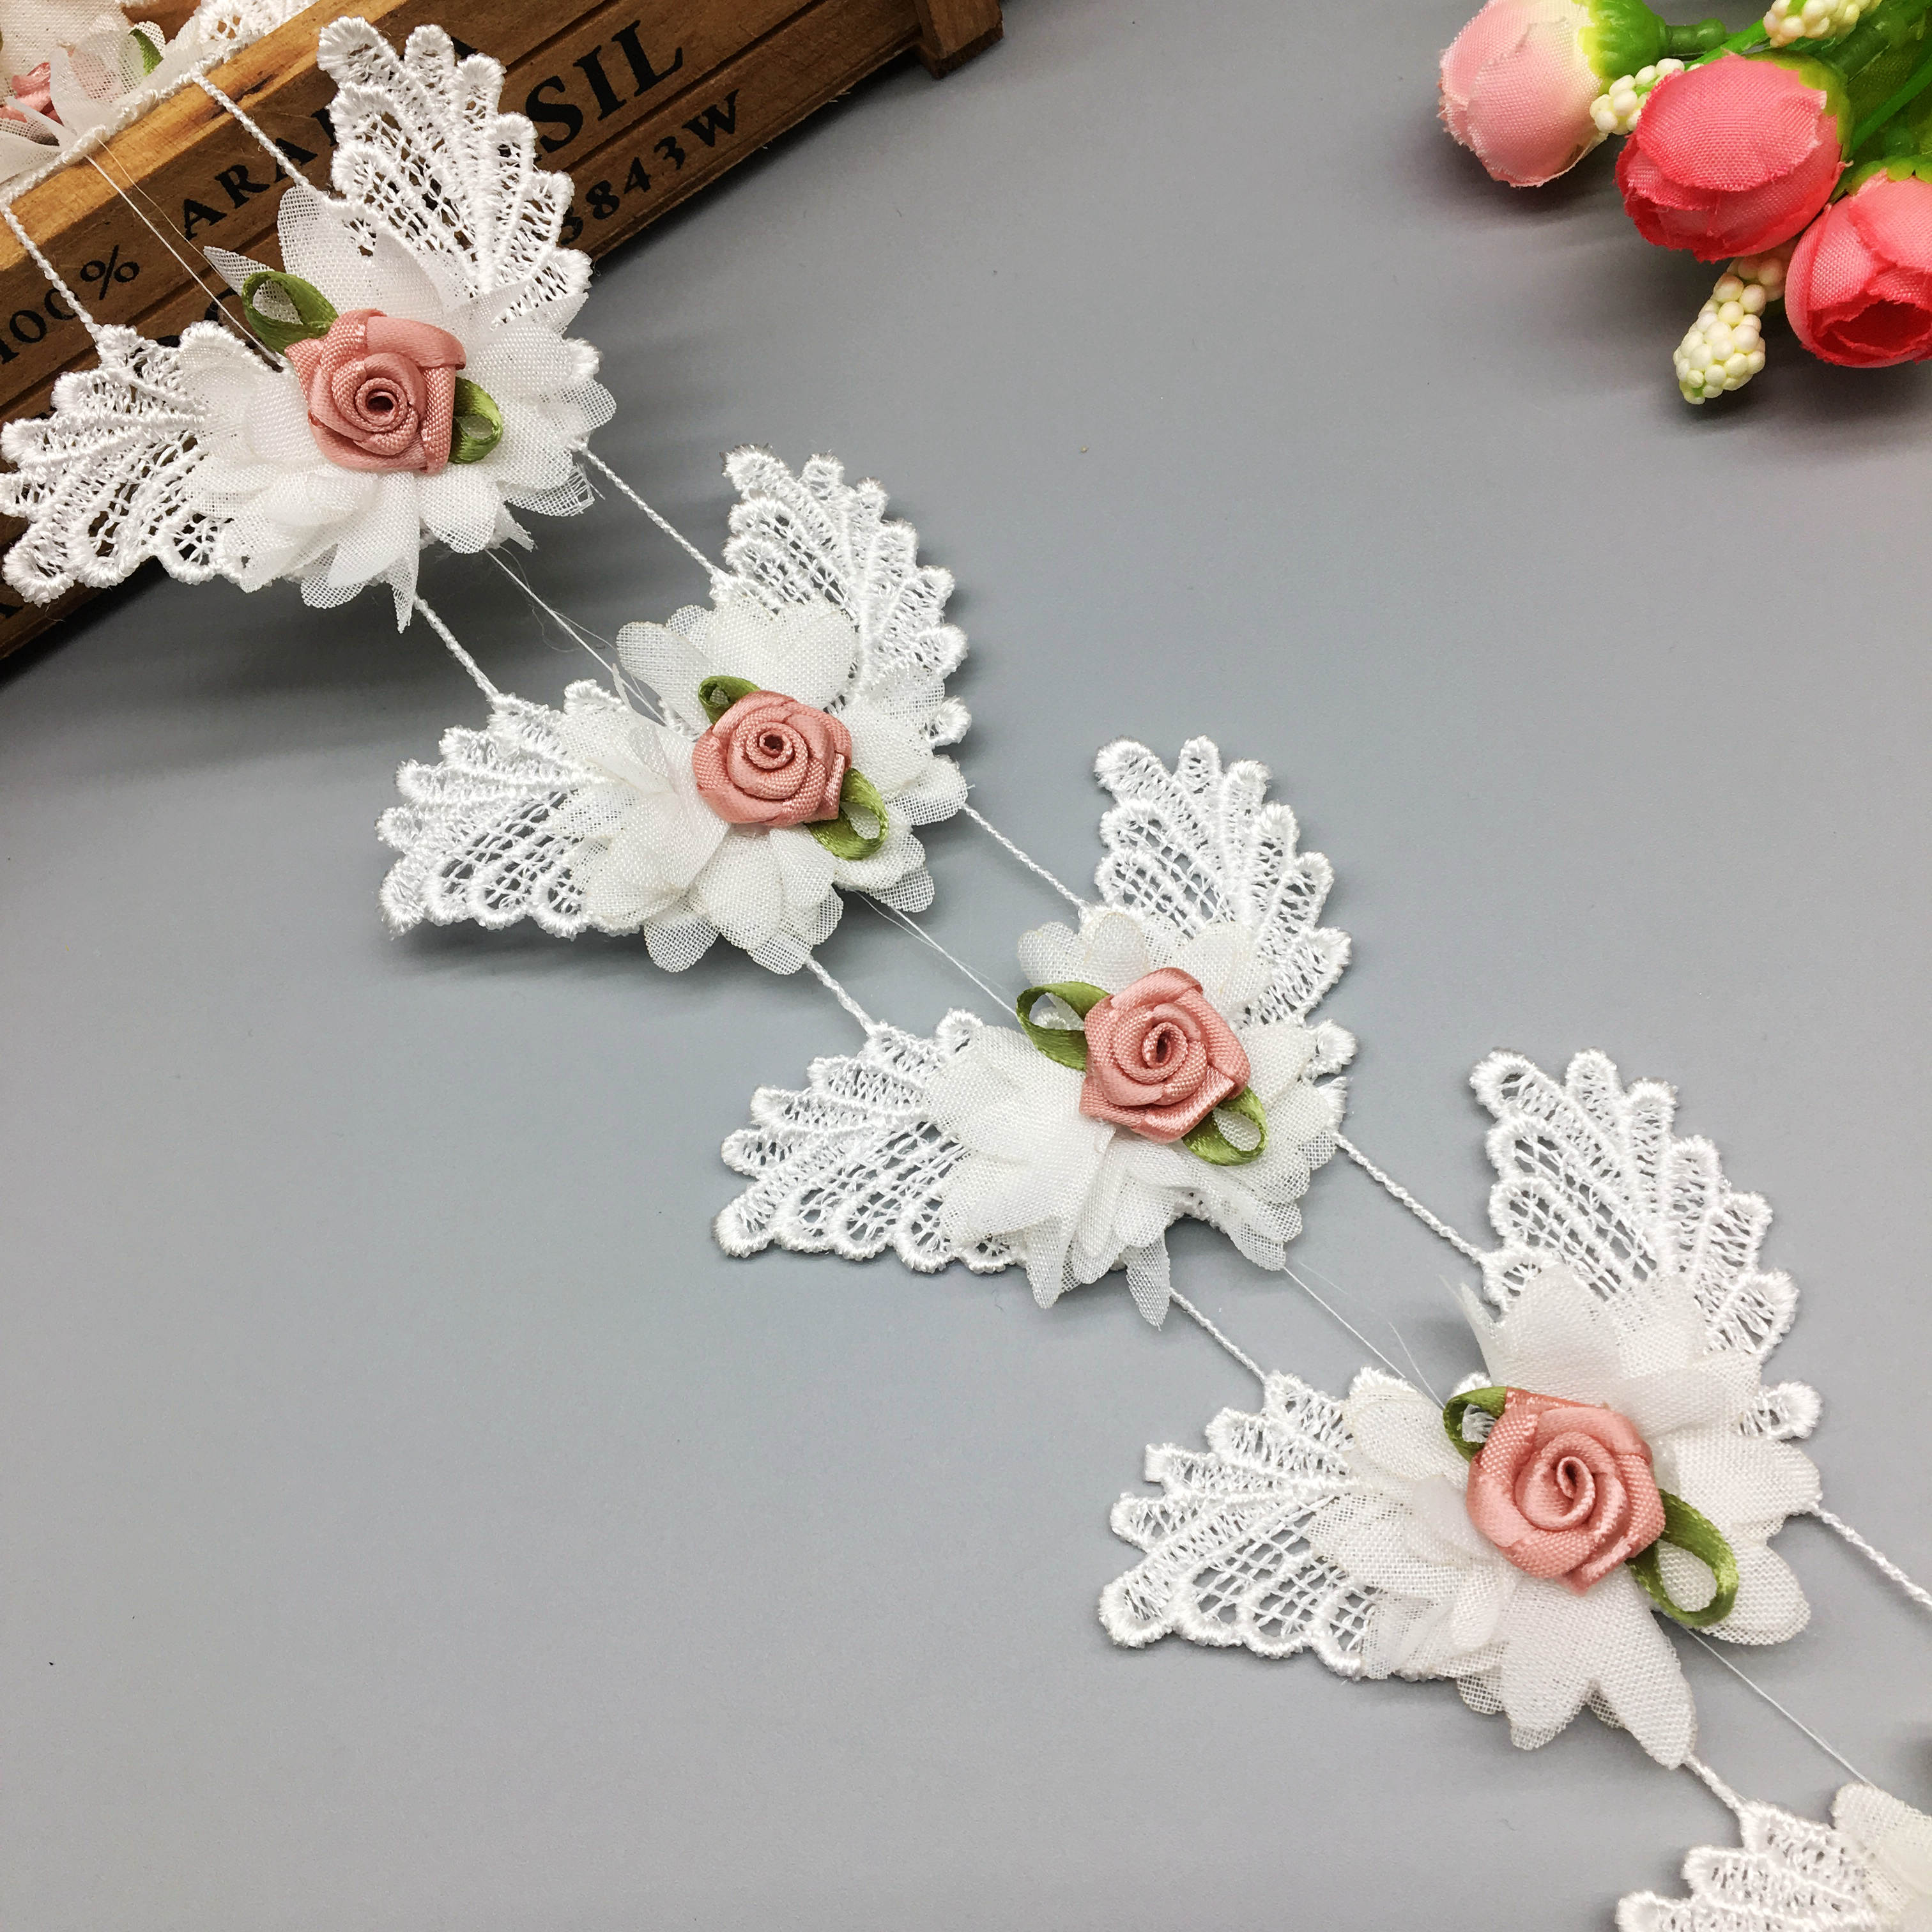 5 Yards Pleated Organza 2-Layer Lace Edge Trim Ribbon 6 cm Width White Trimmings Fabric Embroidered Applique Sewing Craft Wedding Bridal Dress Embellishment DIY Party Decoration Clothes Embroidery